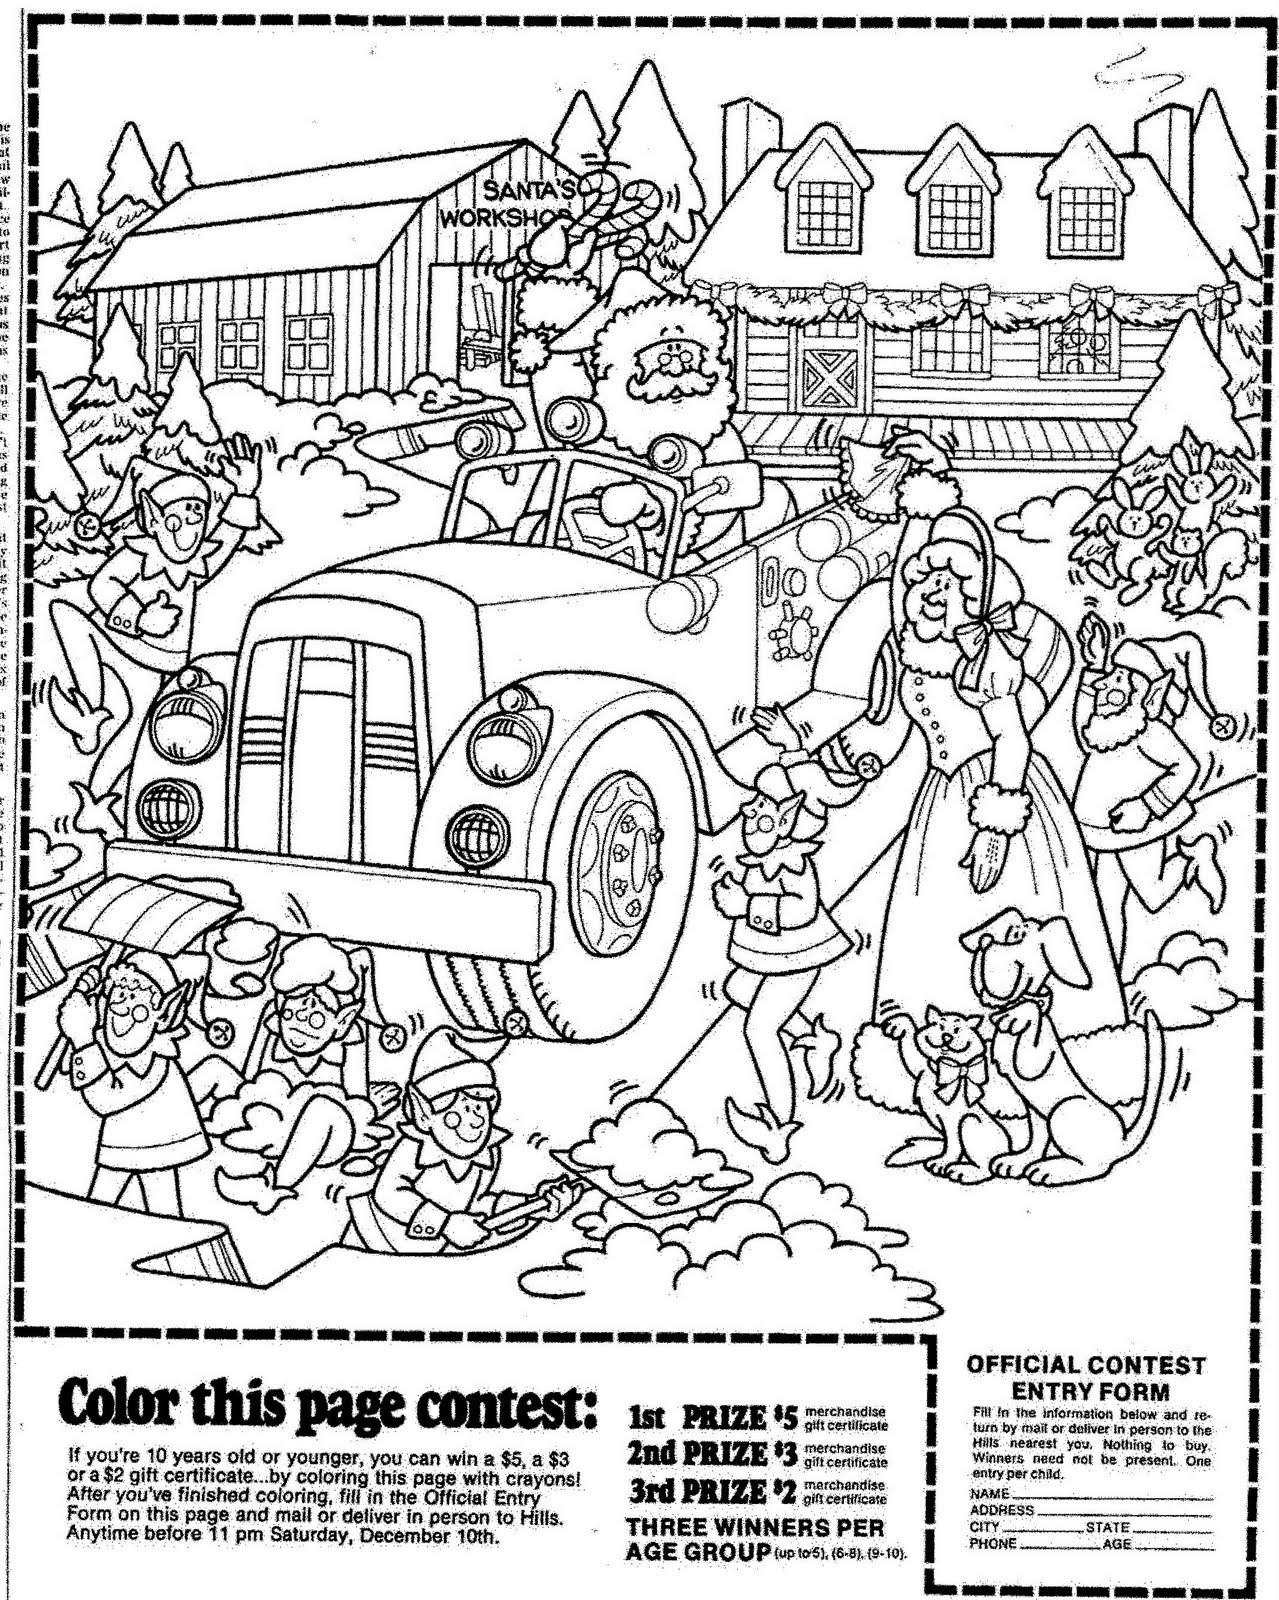 Mostly Paper Dolls: HILL'S Christmas Coloring Contest, 1977